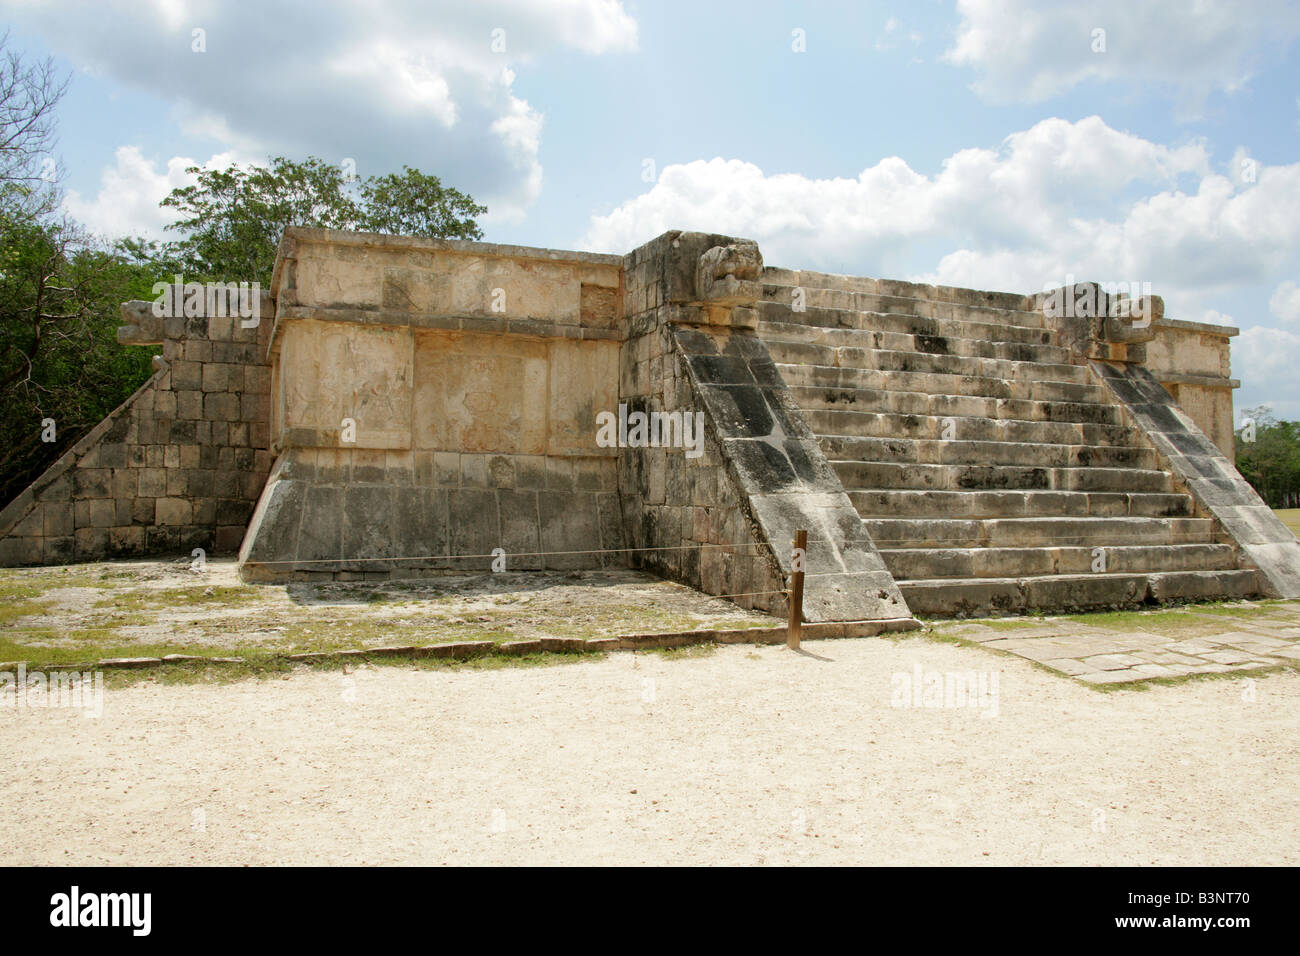 The Platform of Venus, Chichen Itza Archaeological Site, Chichen Itza, Yucatan, Mexico Stock Photo